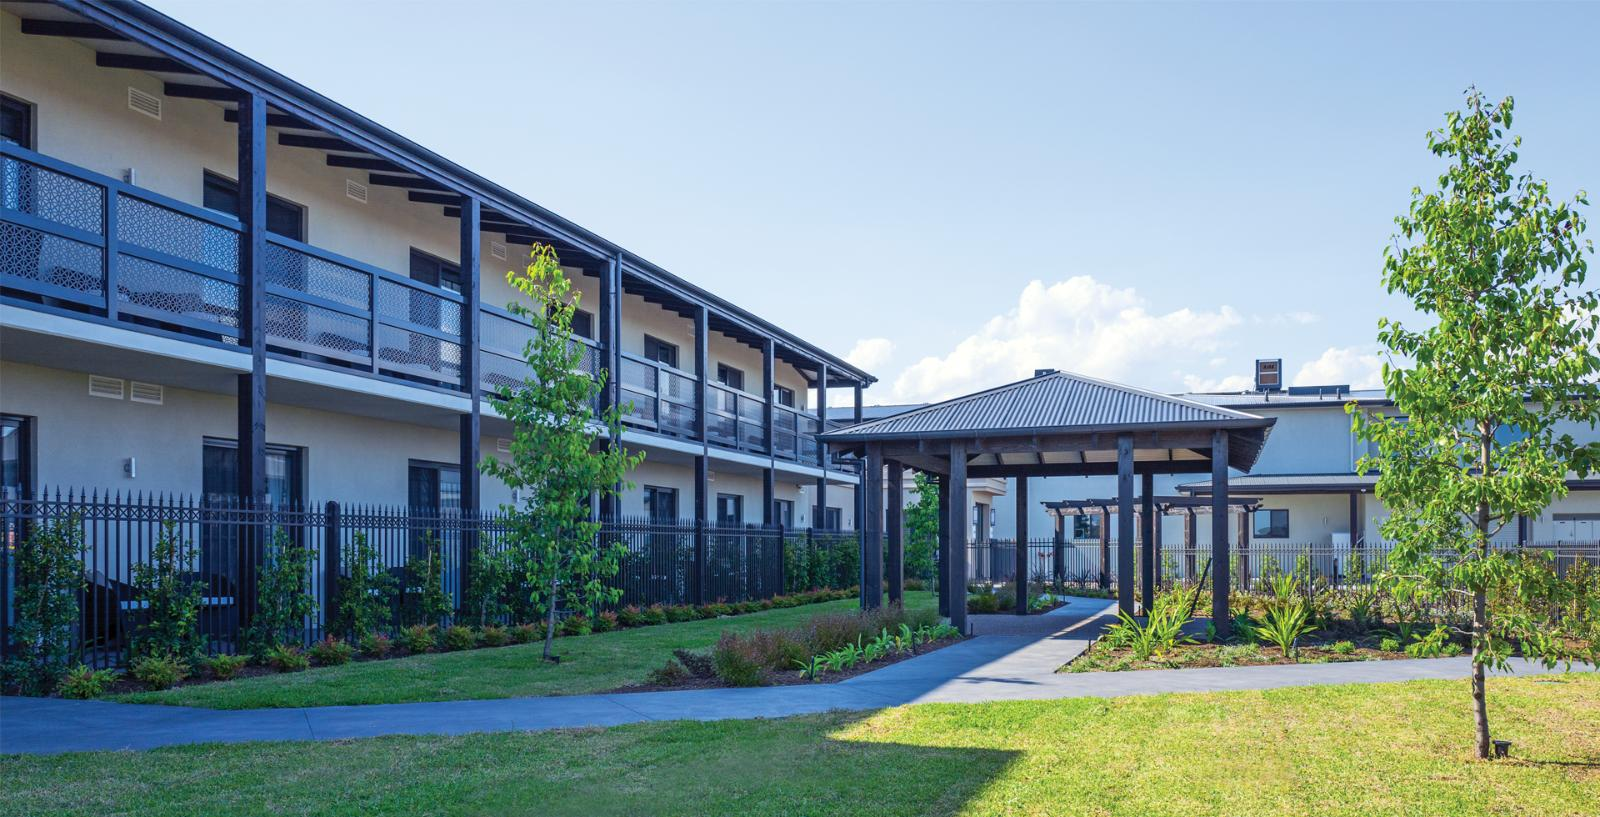 Arcare aged care keysborough courtyard 01